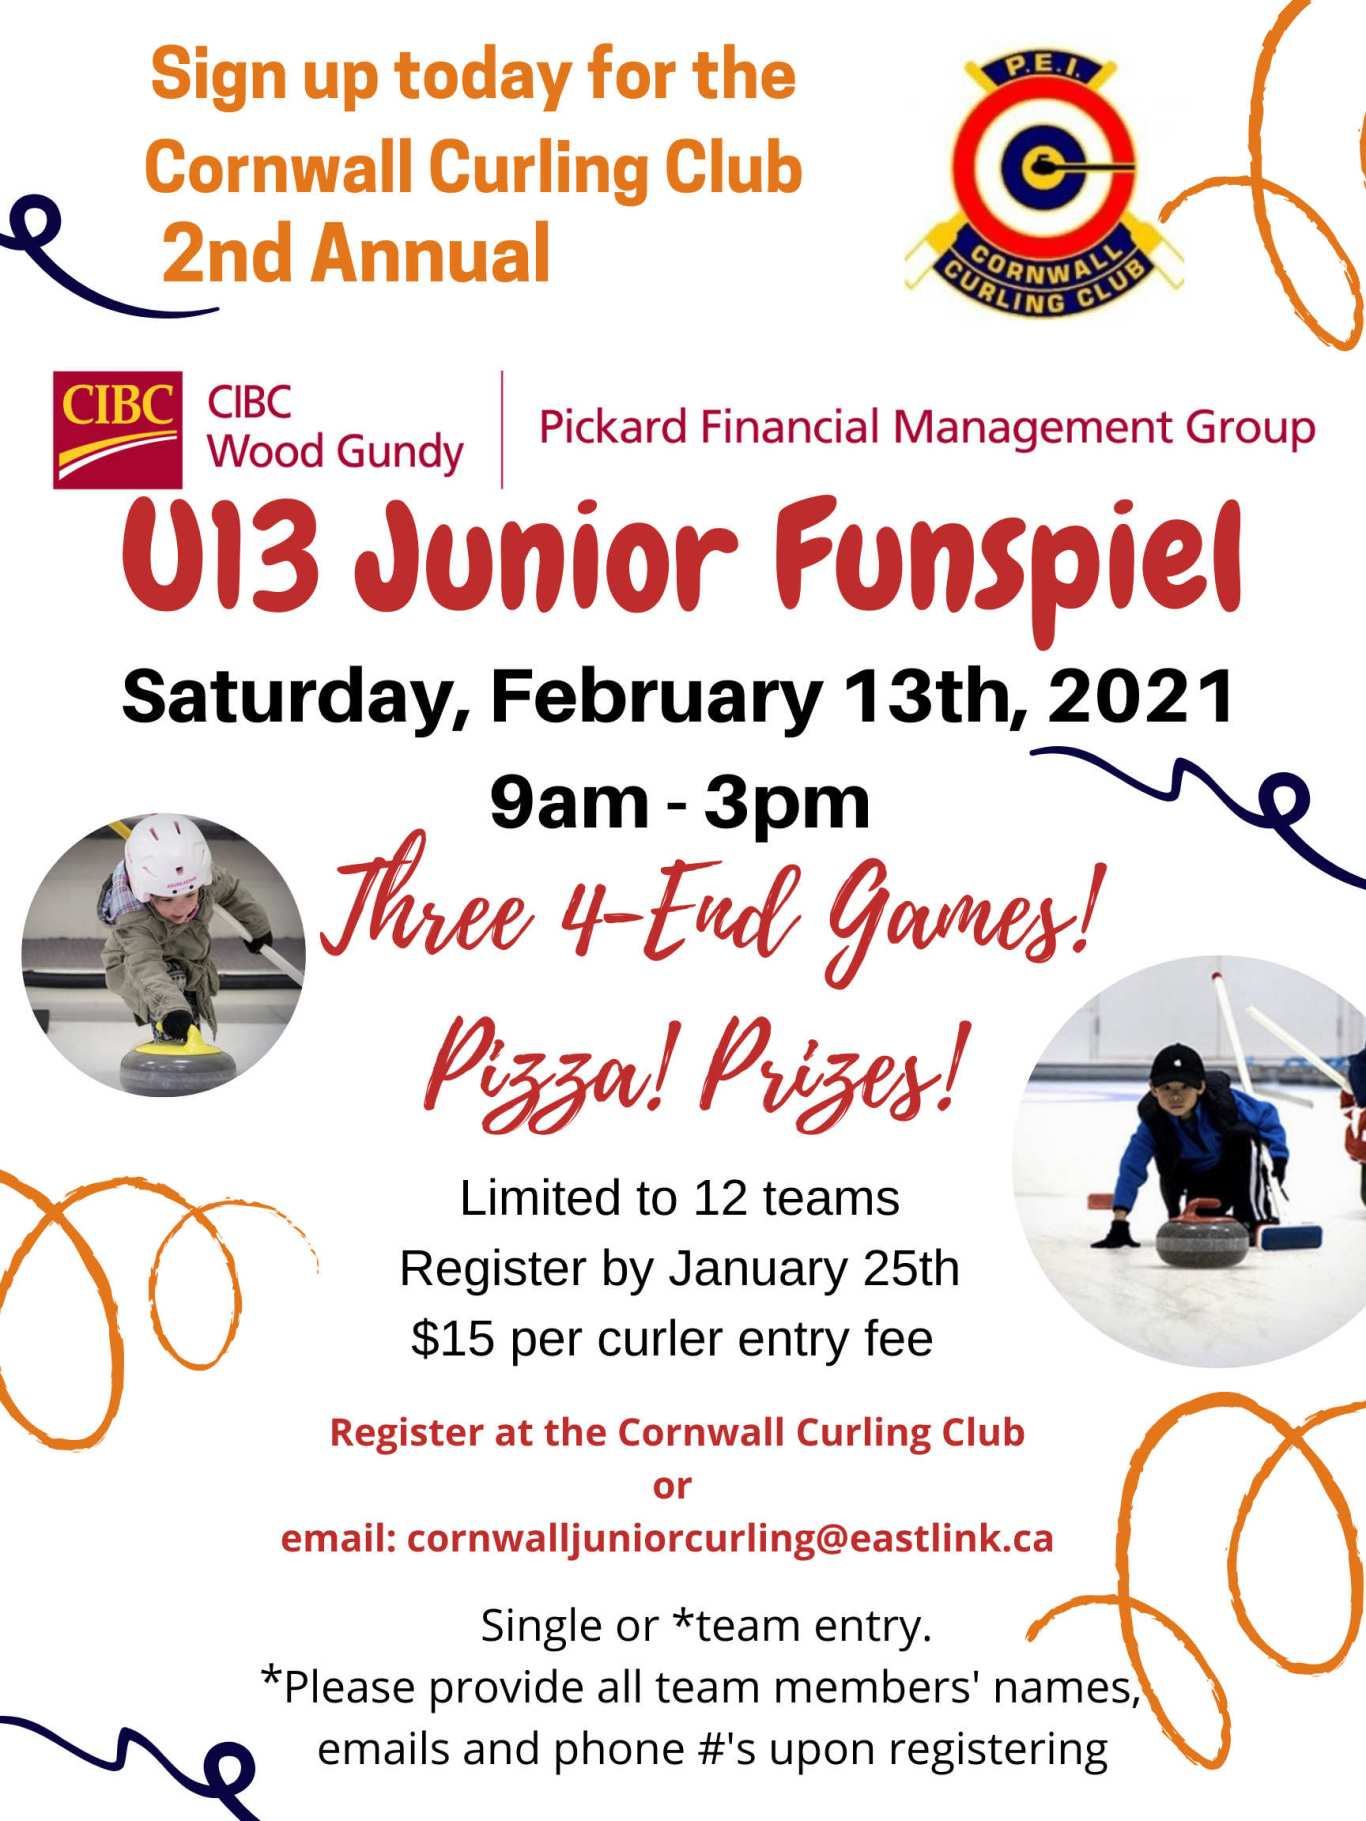 CIBC Wood Gundy/Pickard Fin. Mgt. U13 Funspiel @ Cornwall Curling Club